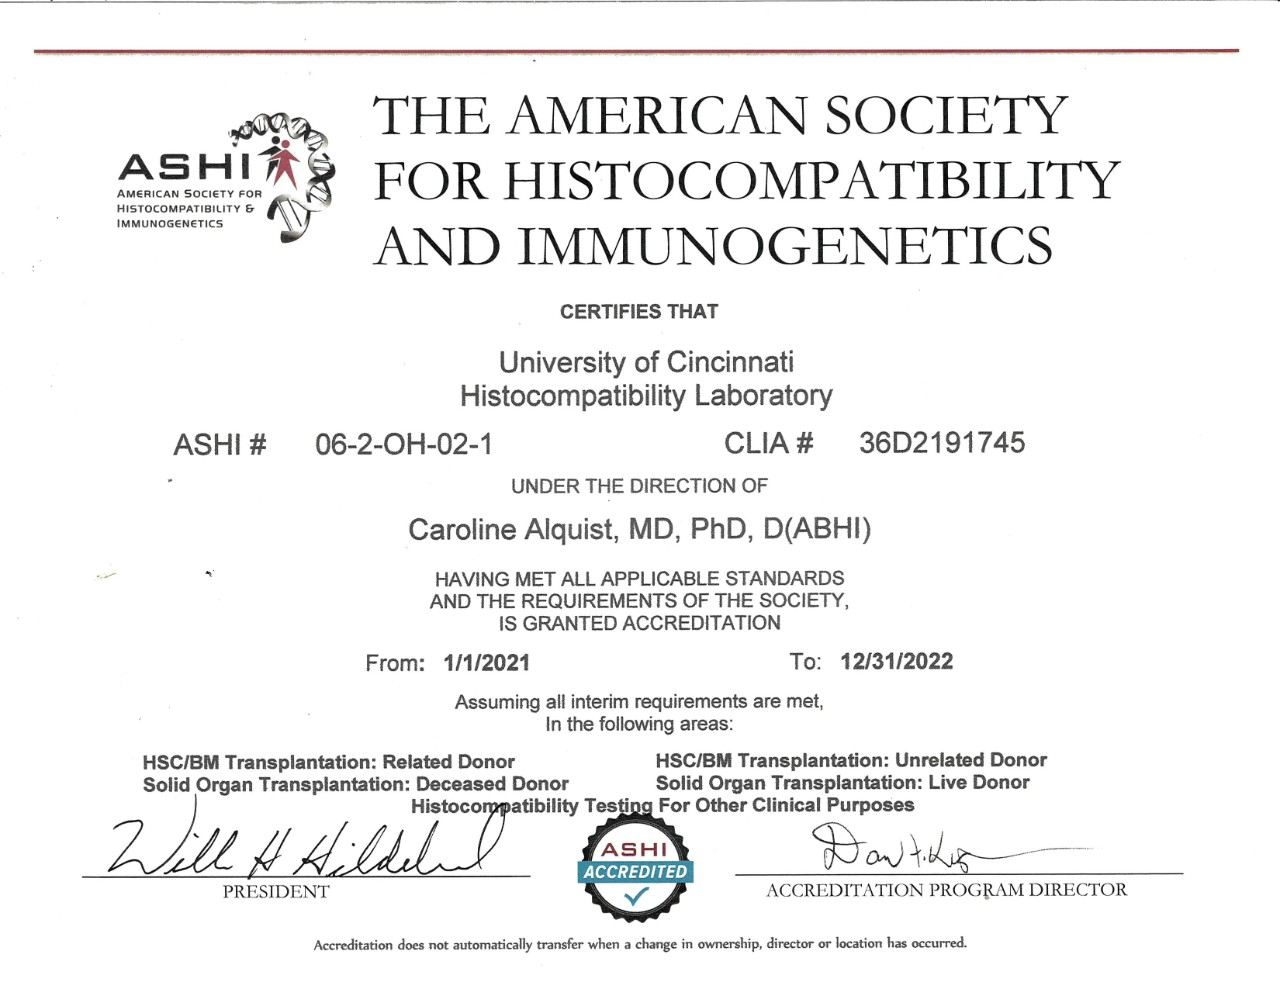 Accreditation from ASHI (American Society for Histocompatibility and Immunogenetics) for Hoxworth Blood Center